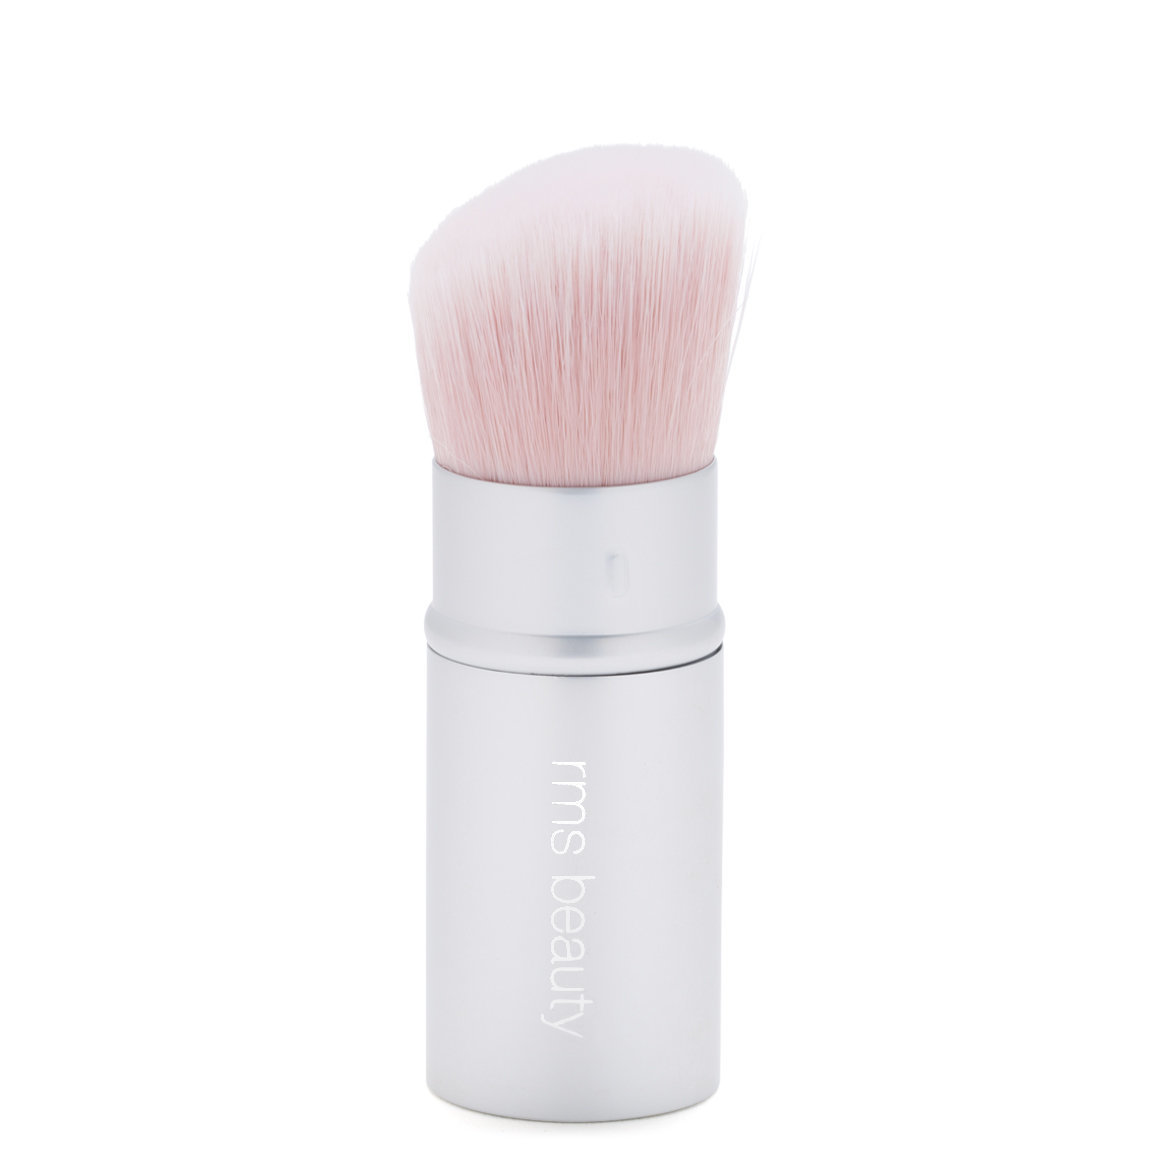 rms beauty Luminizing Powder Retractable Brush product smear.